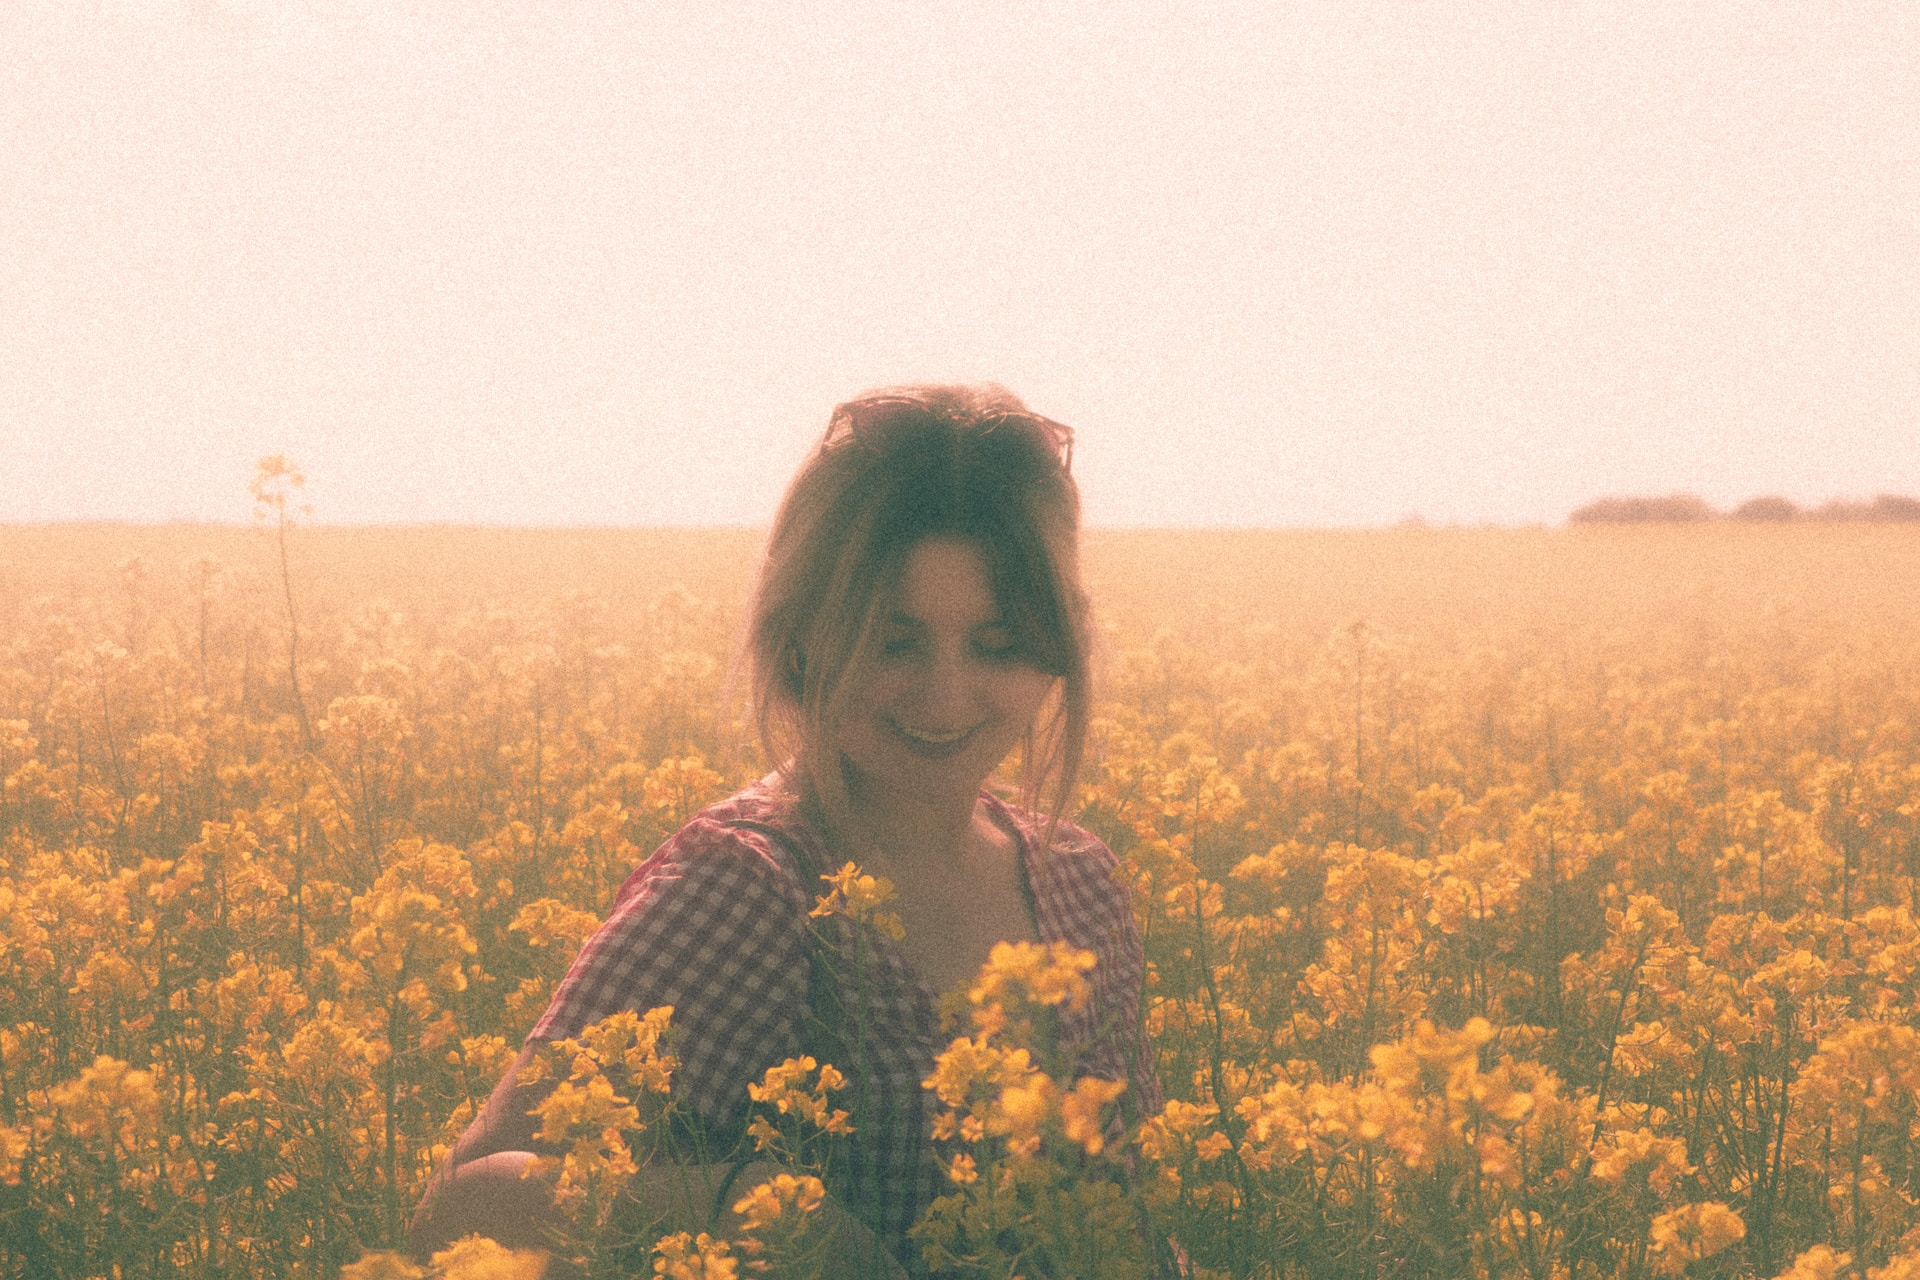 woman in black and white long sleeve shirt standing on yellow flower field during daytime